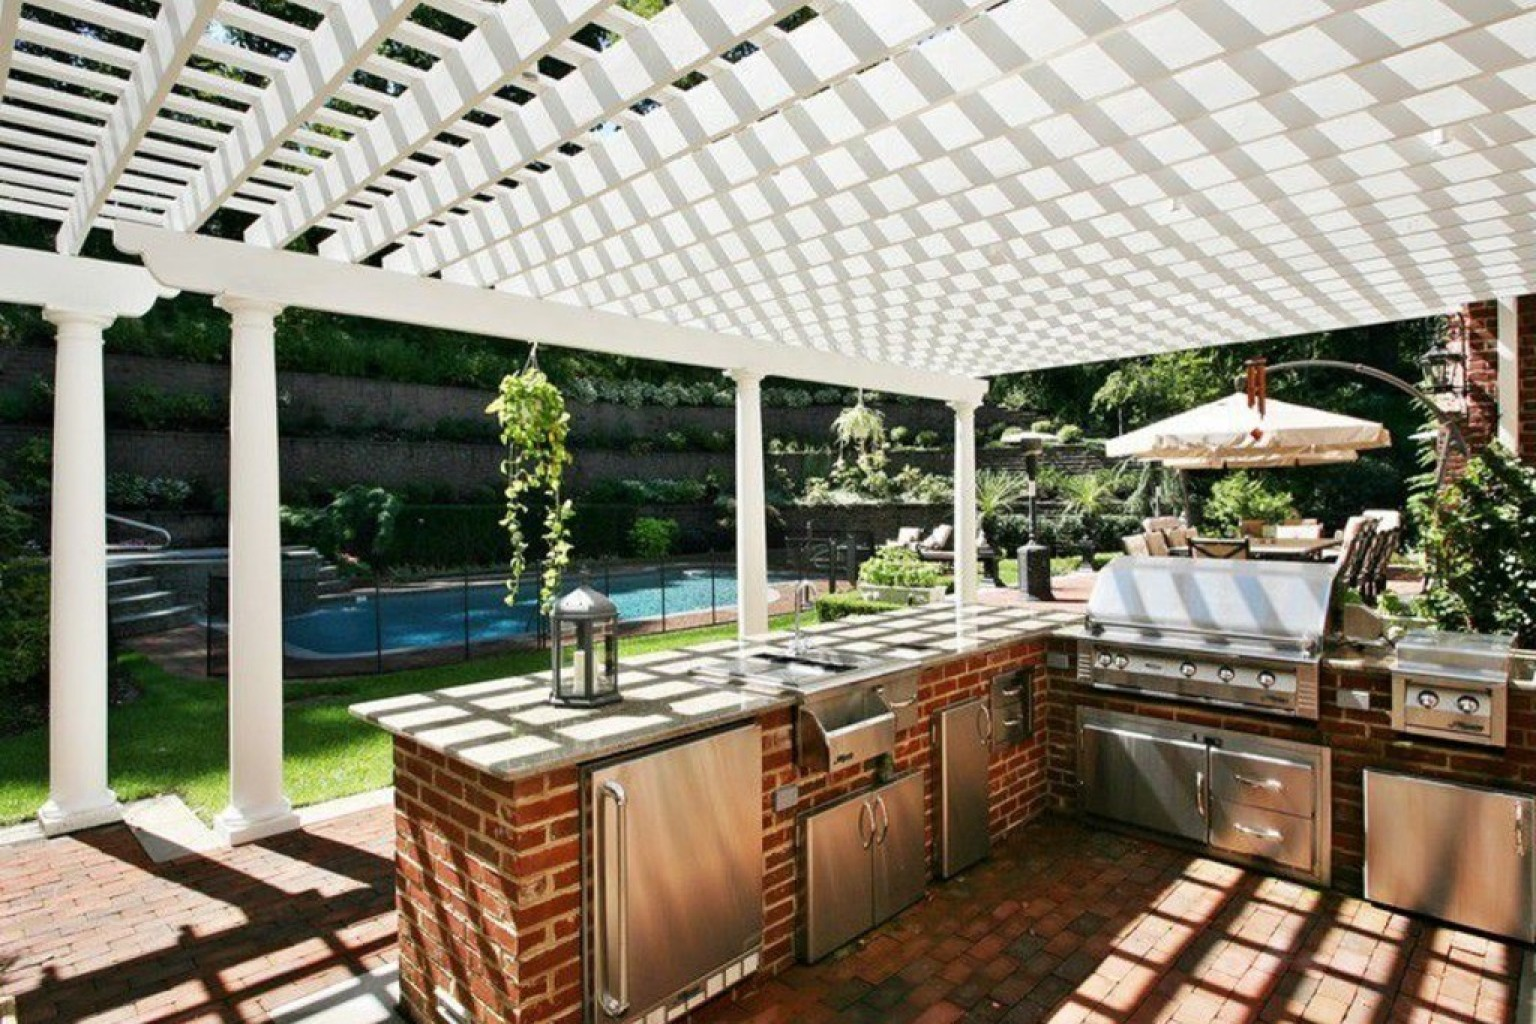 14 Incredible Outdoor Kitchens That Go Way Beyond Grills (PHOTOS ...